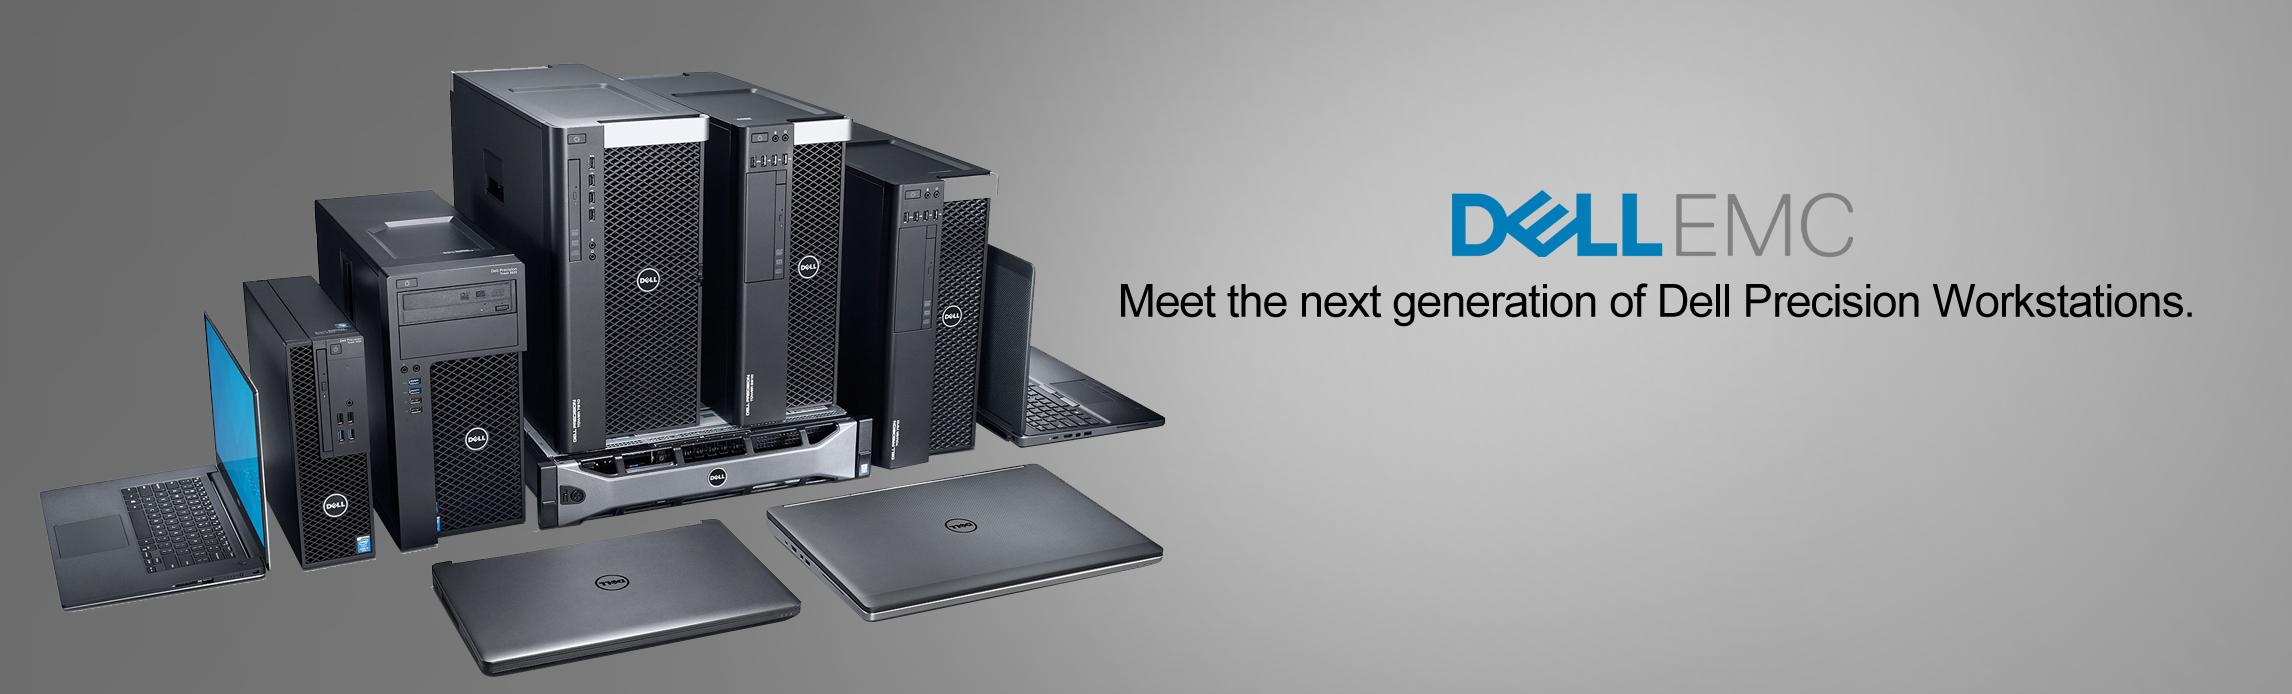 Dell-100-res